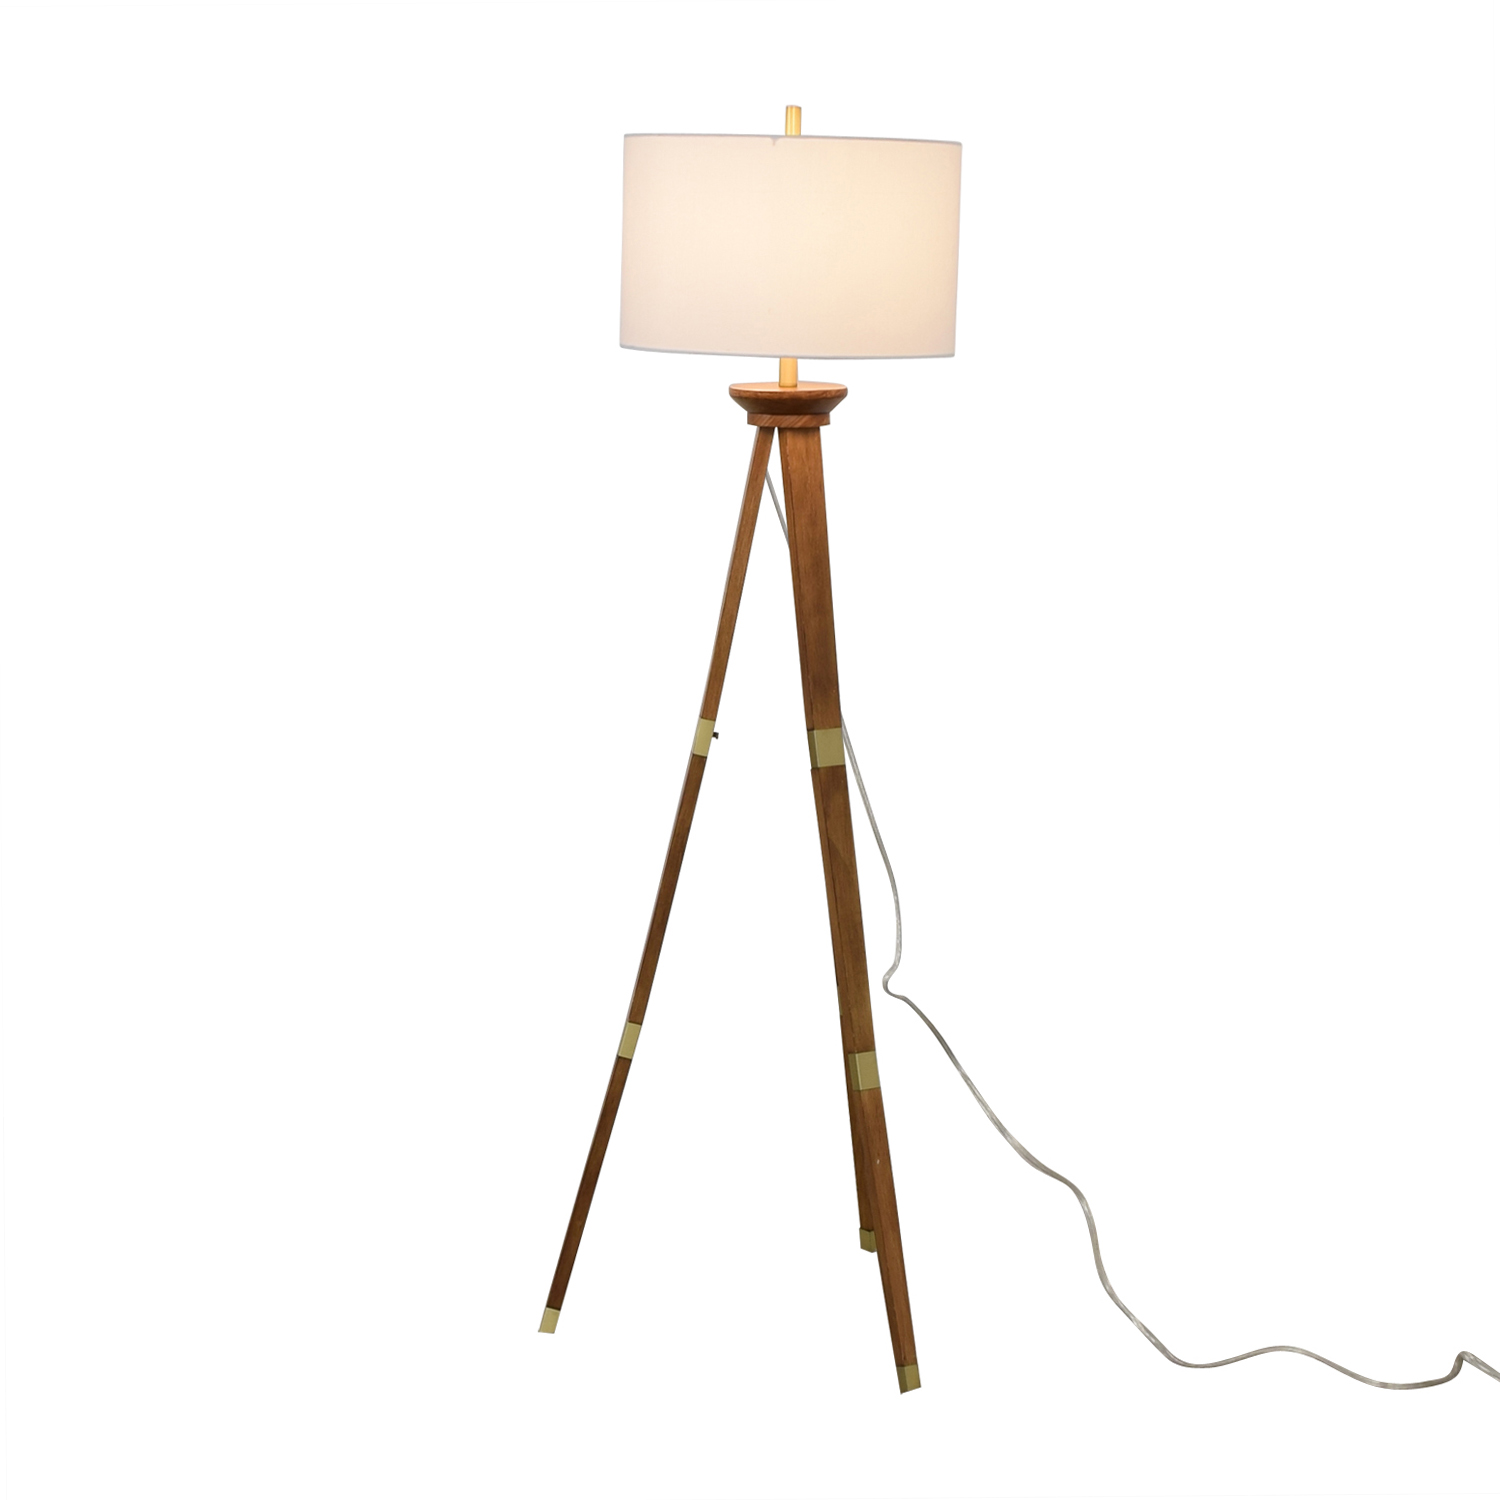 54 Off Article Article Tripod Floor Lamp Decor